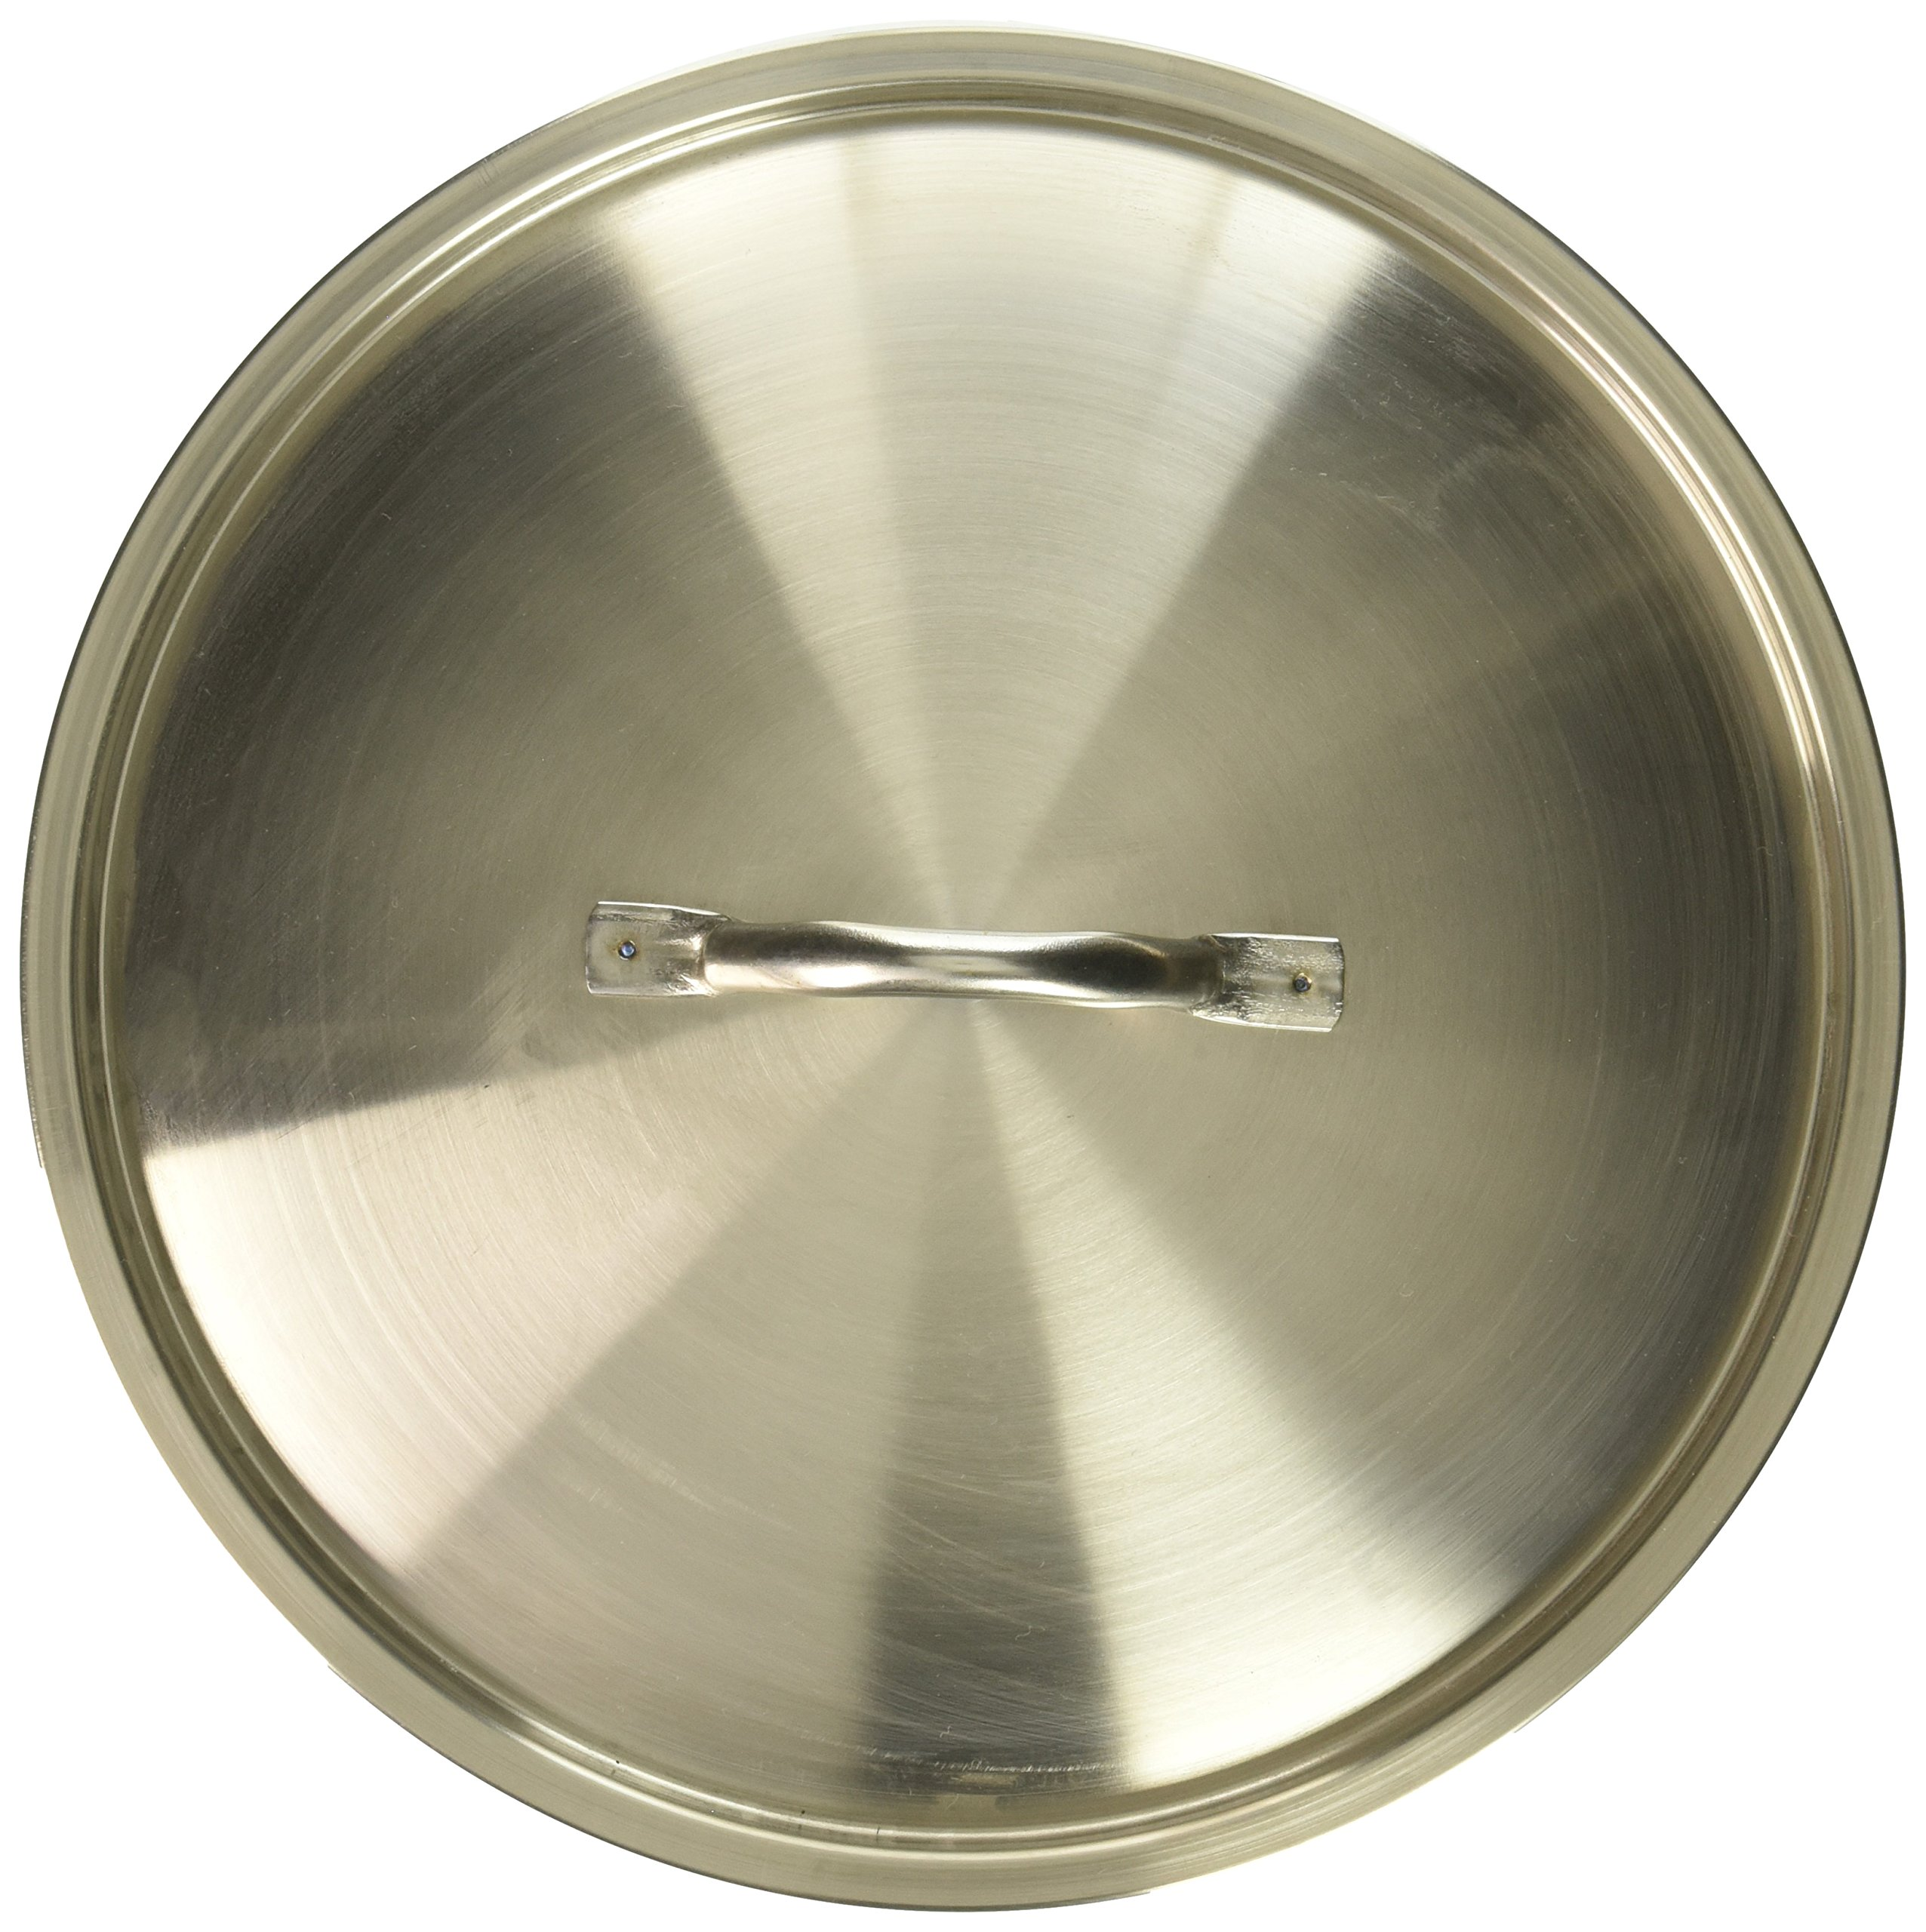 Paderno World Cuisine''Grand Gourmet'' Stainless-steel 11-Inch Lid